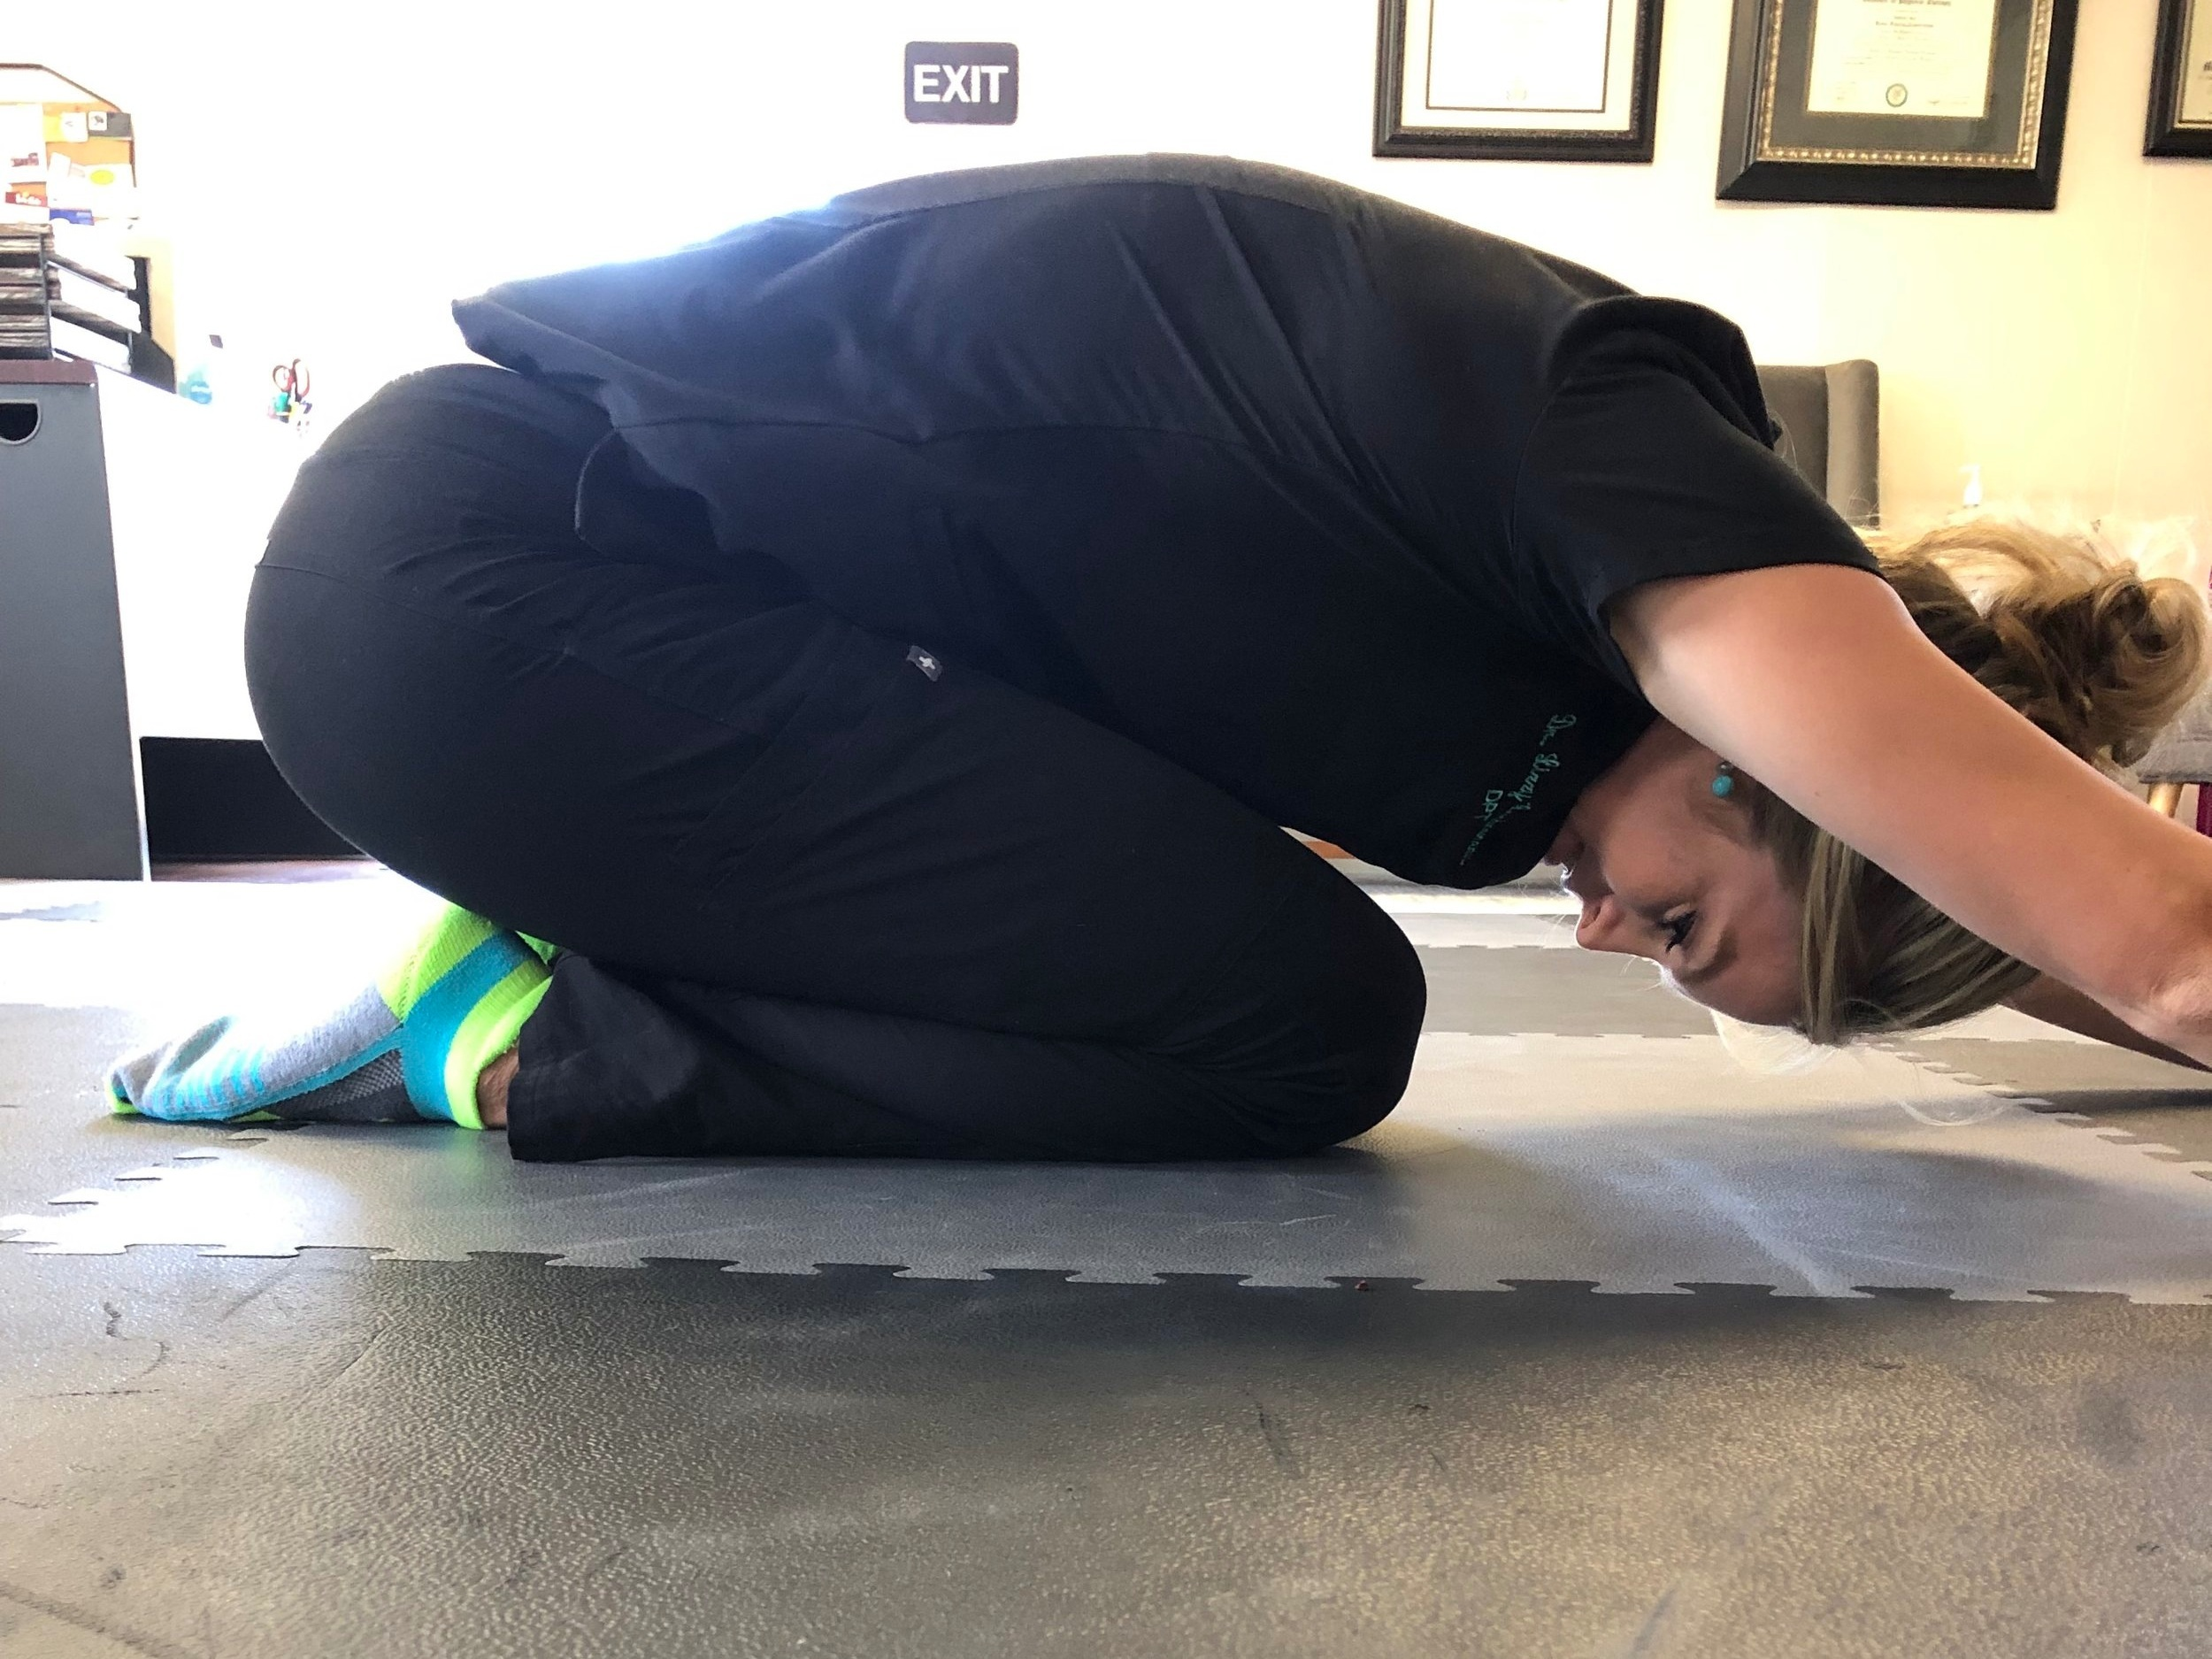 Prayer Stretch with Knee Flexion Focus